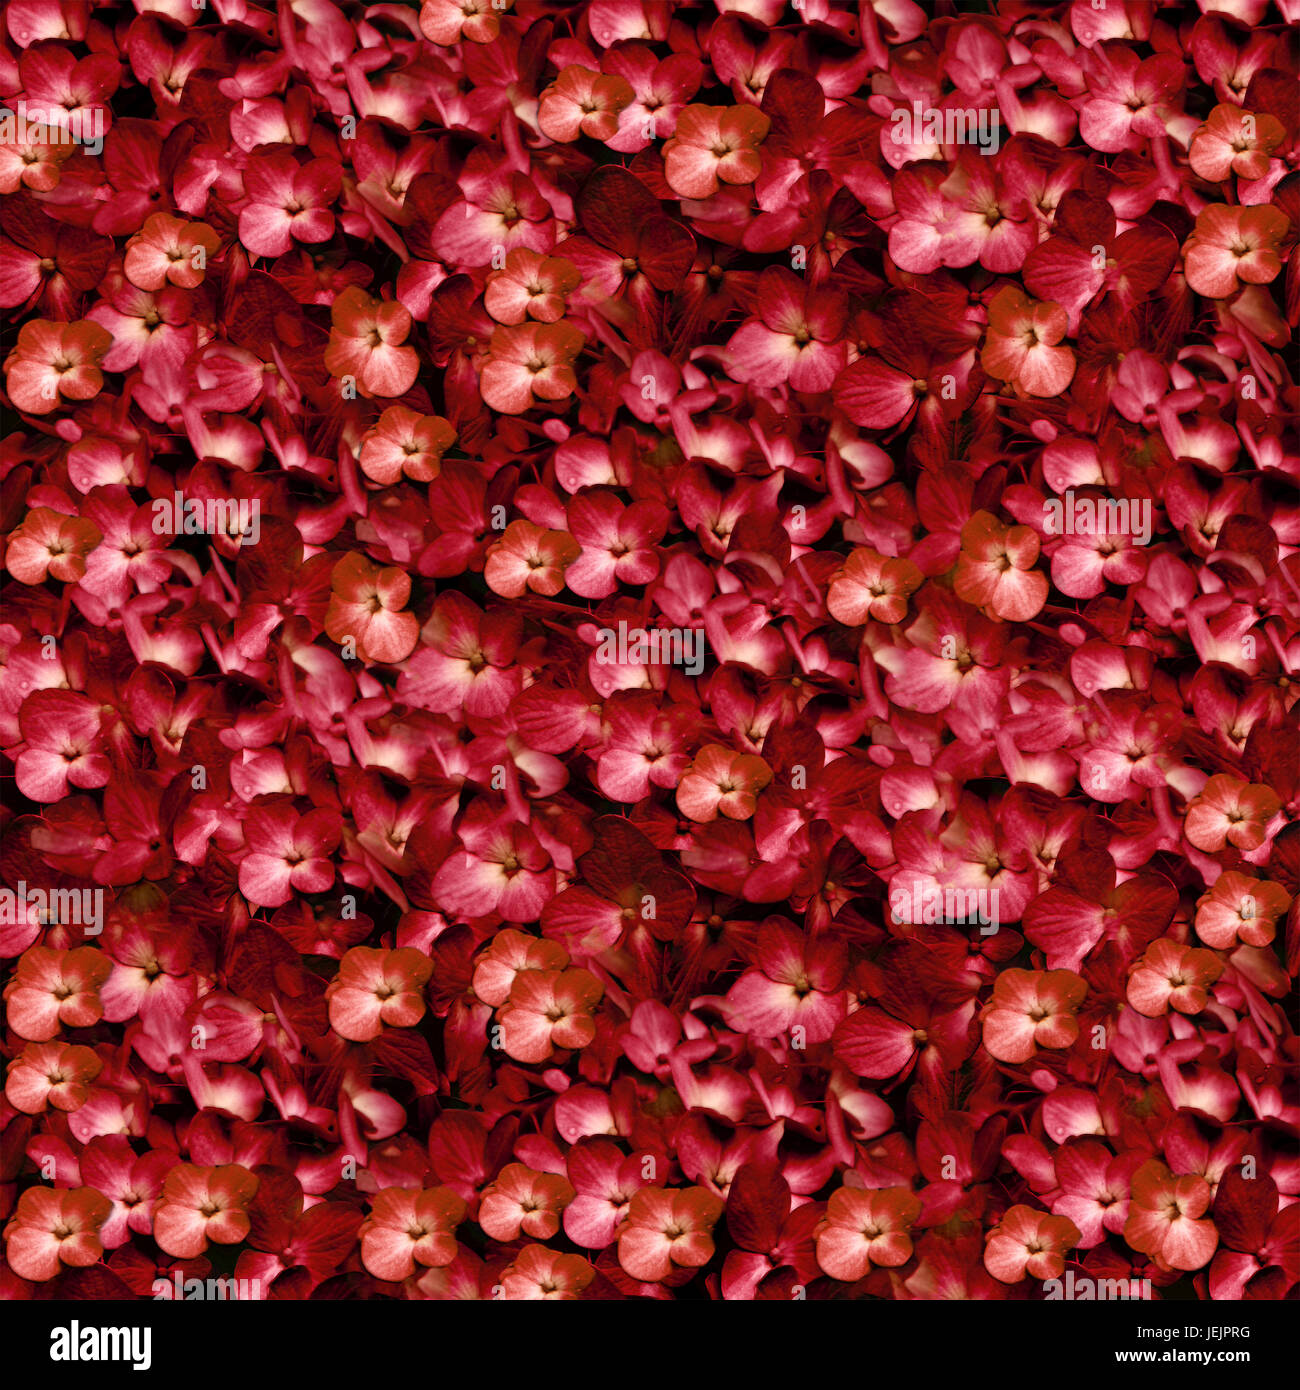 Flowers Pattern Collage in Warm Tones - Stock Image